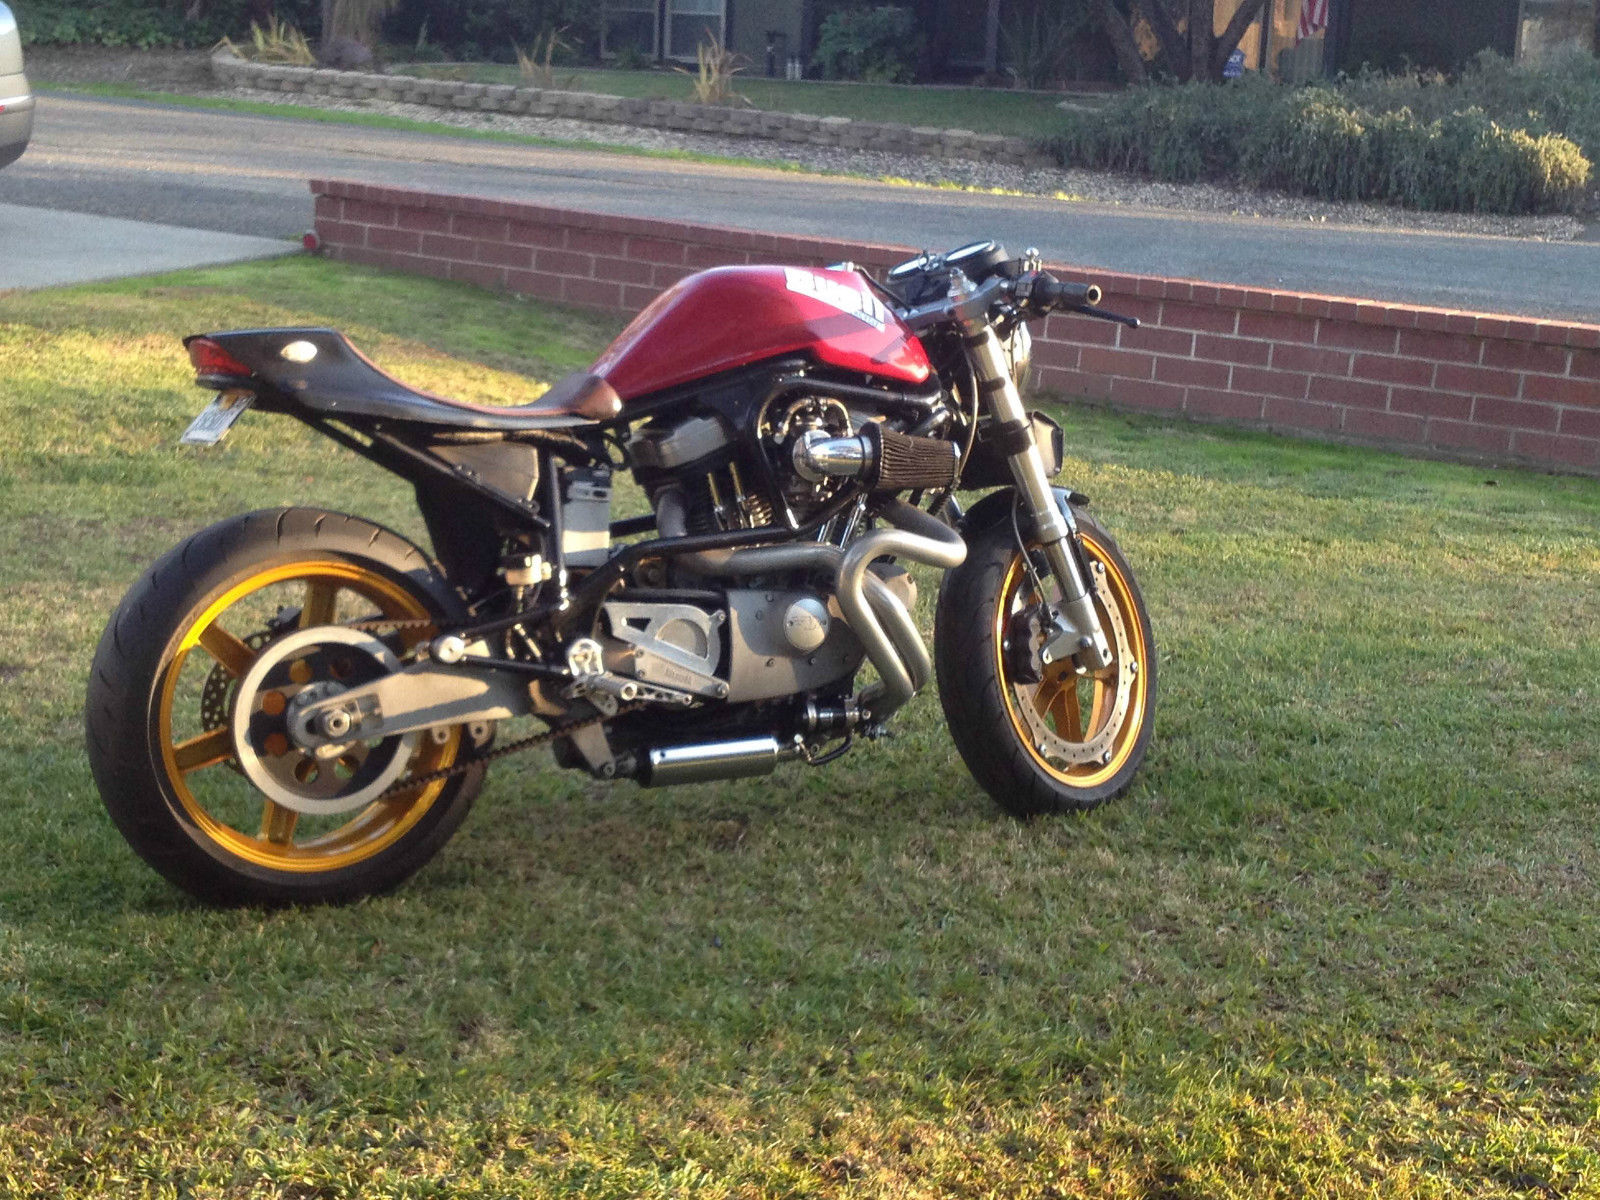 1999 Harley Davidson Sportster Buell Cyclone Cafe Racer